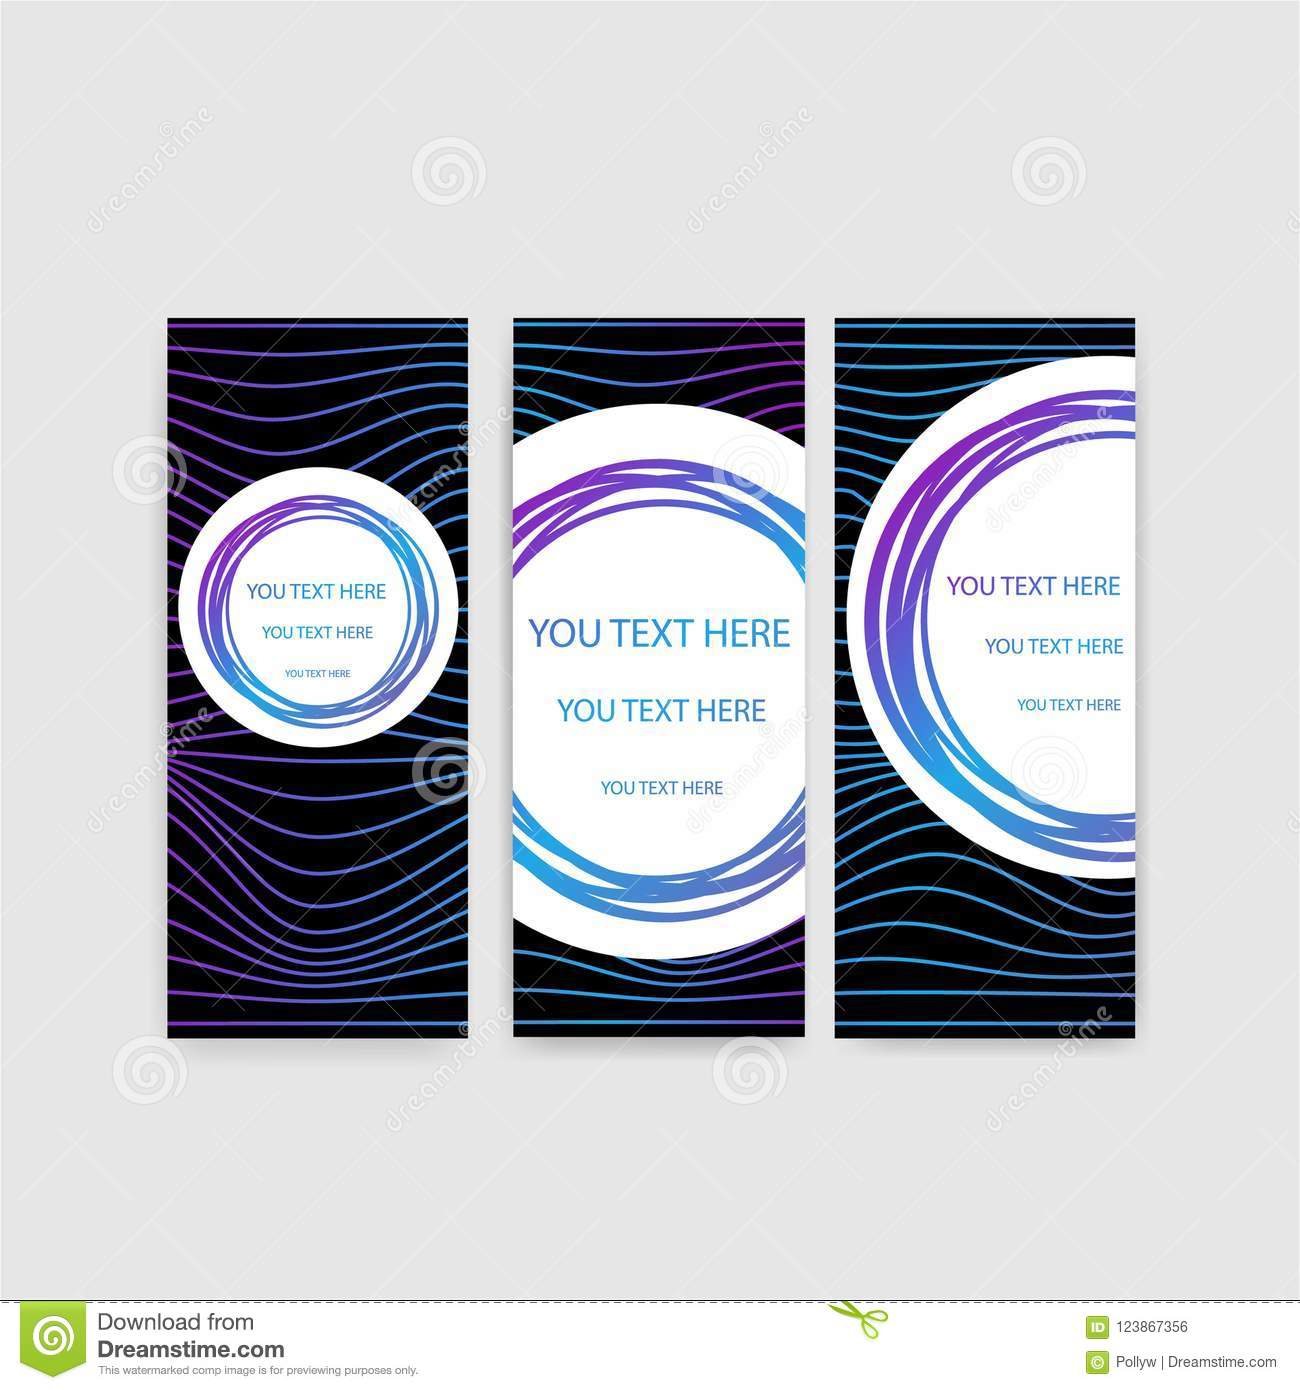 Abstract waves backgrounds flayers set